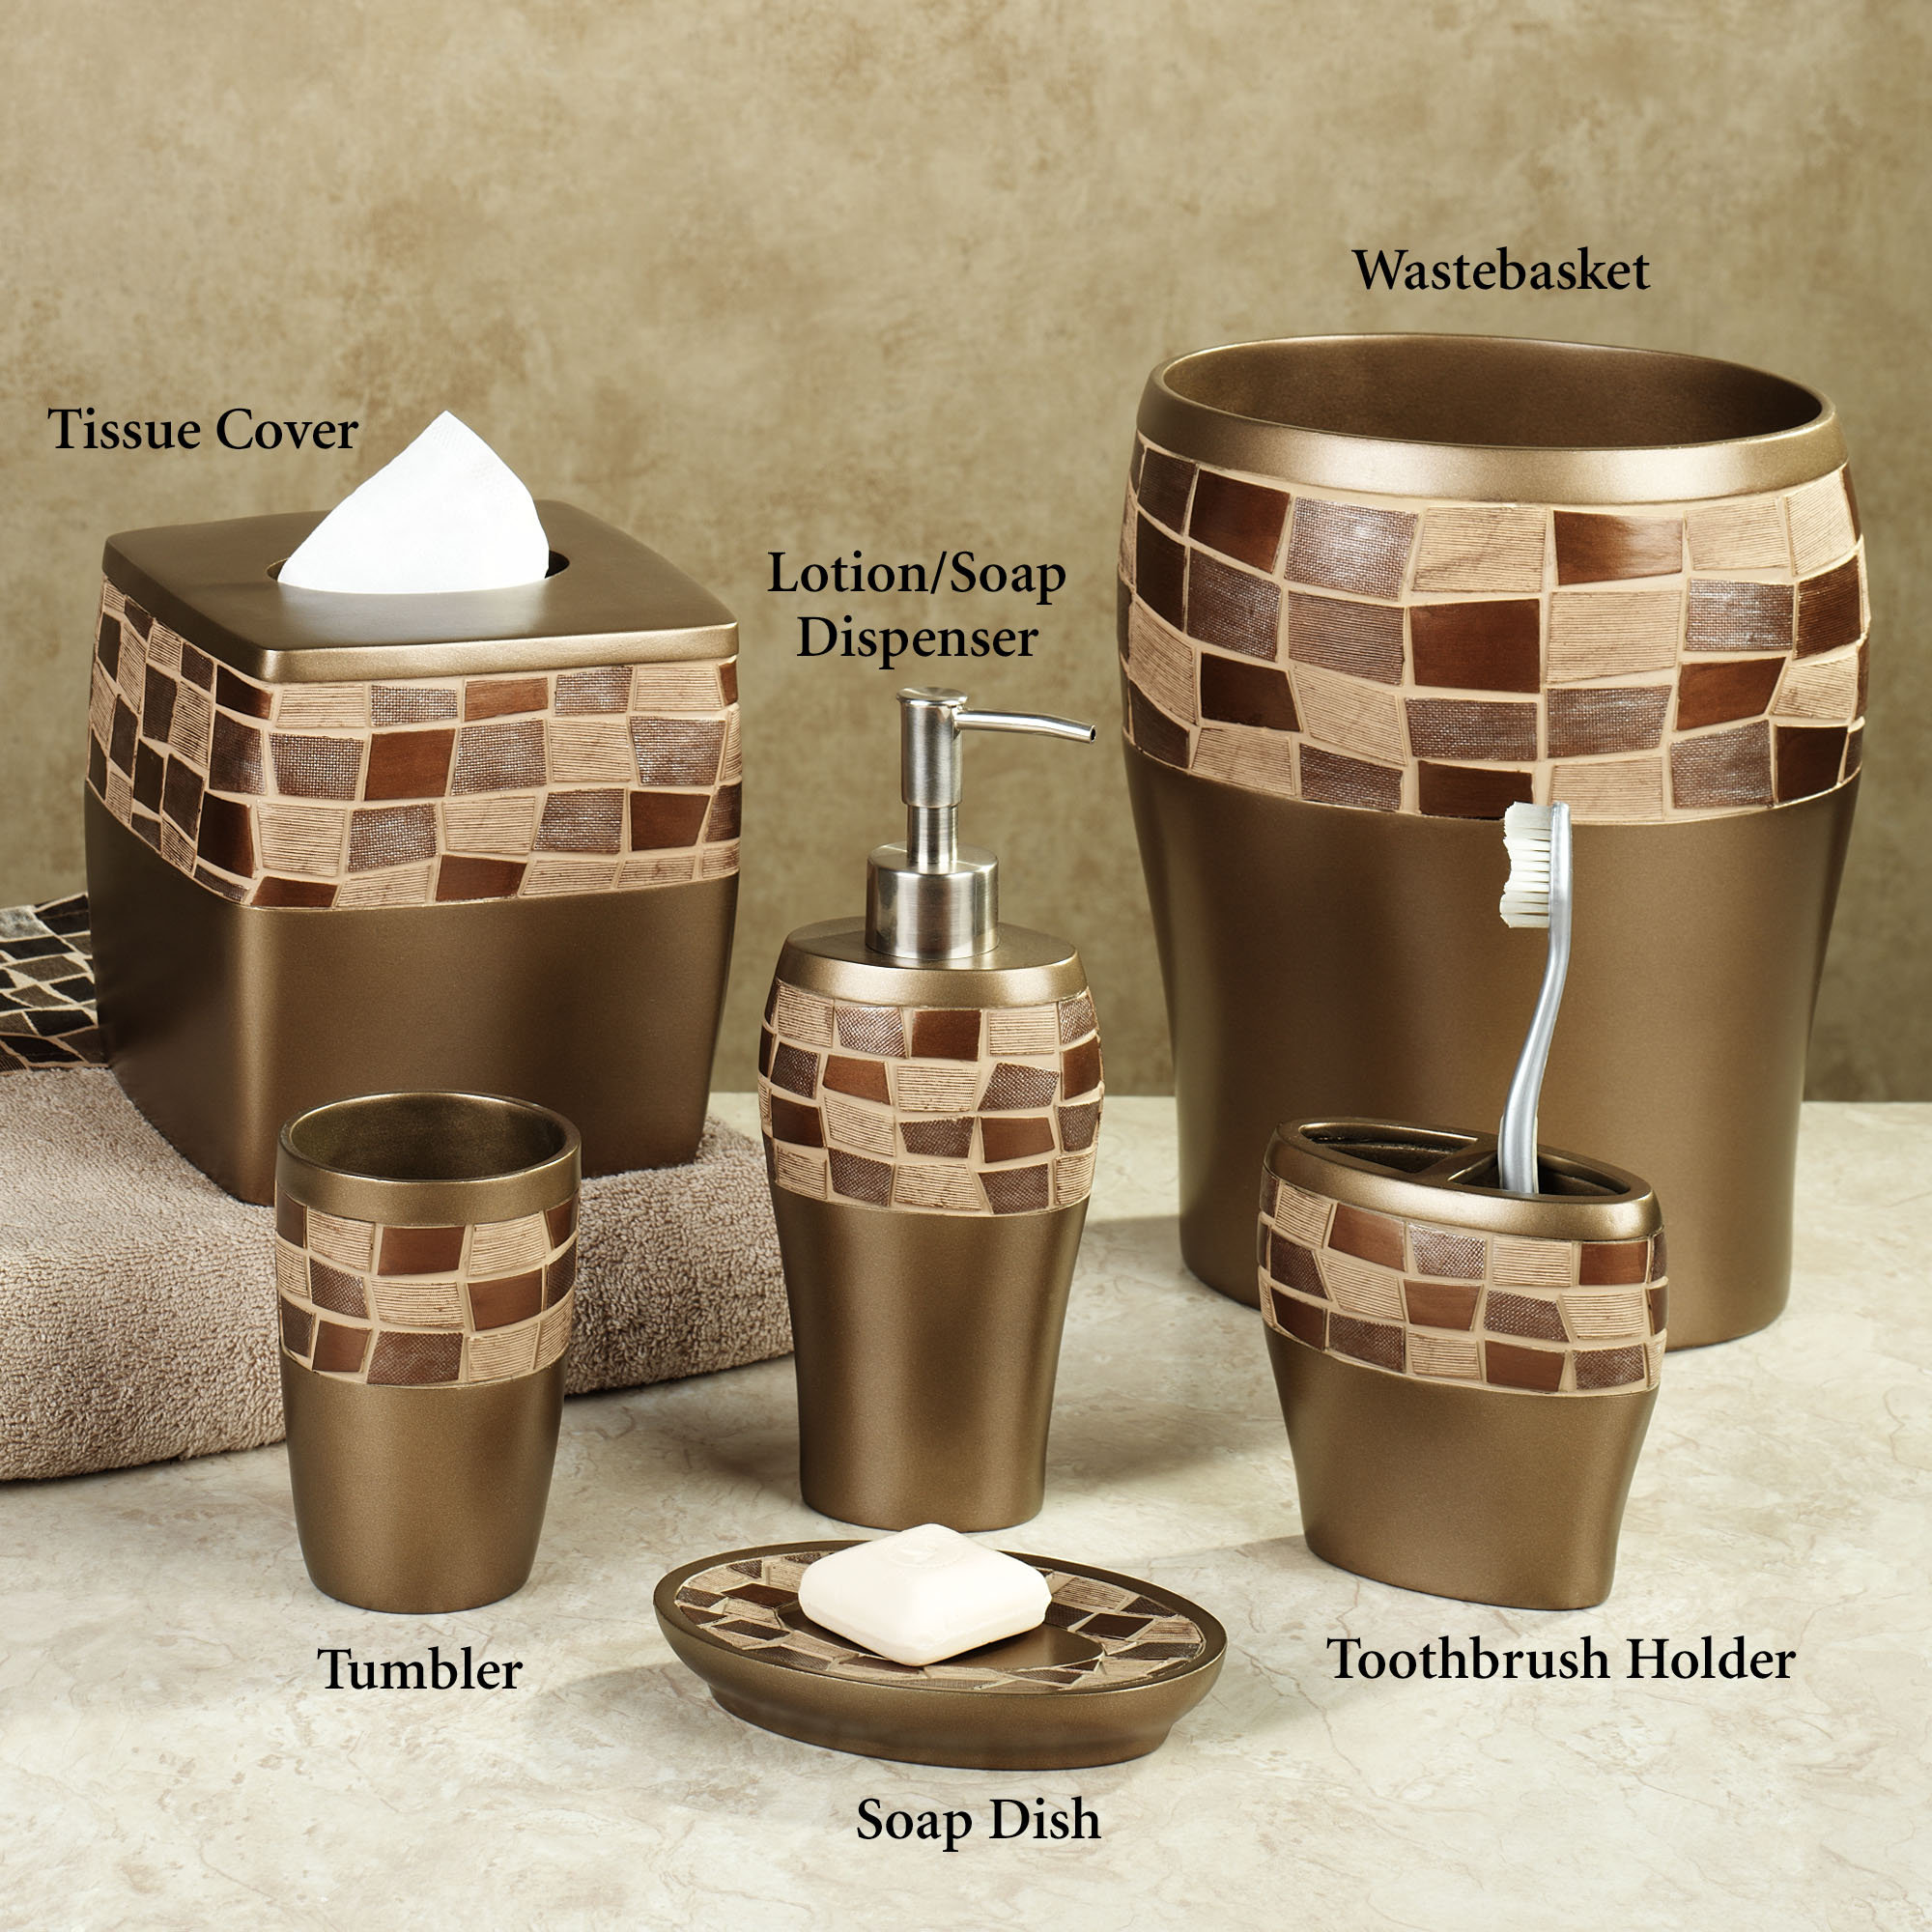 Bath accessories sets ideas homesfeed for Bathroom decor green and brown